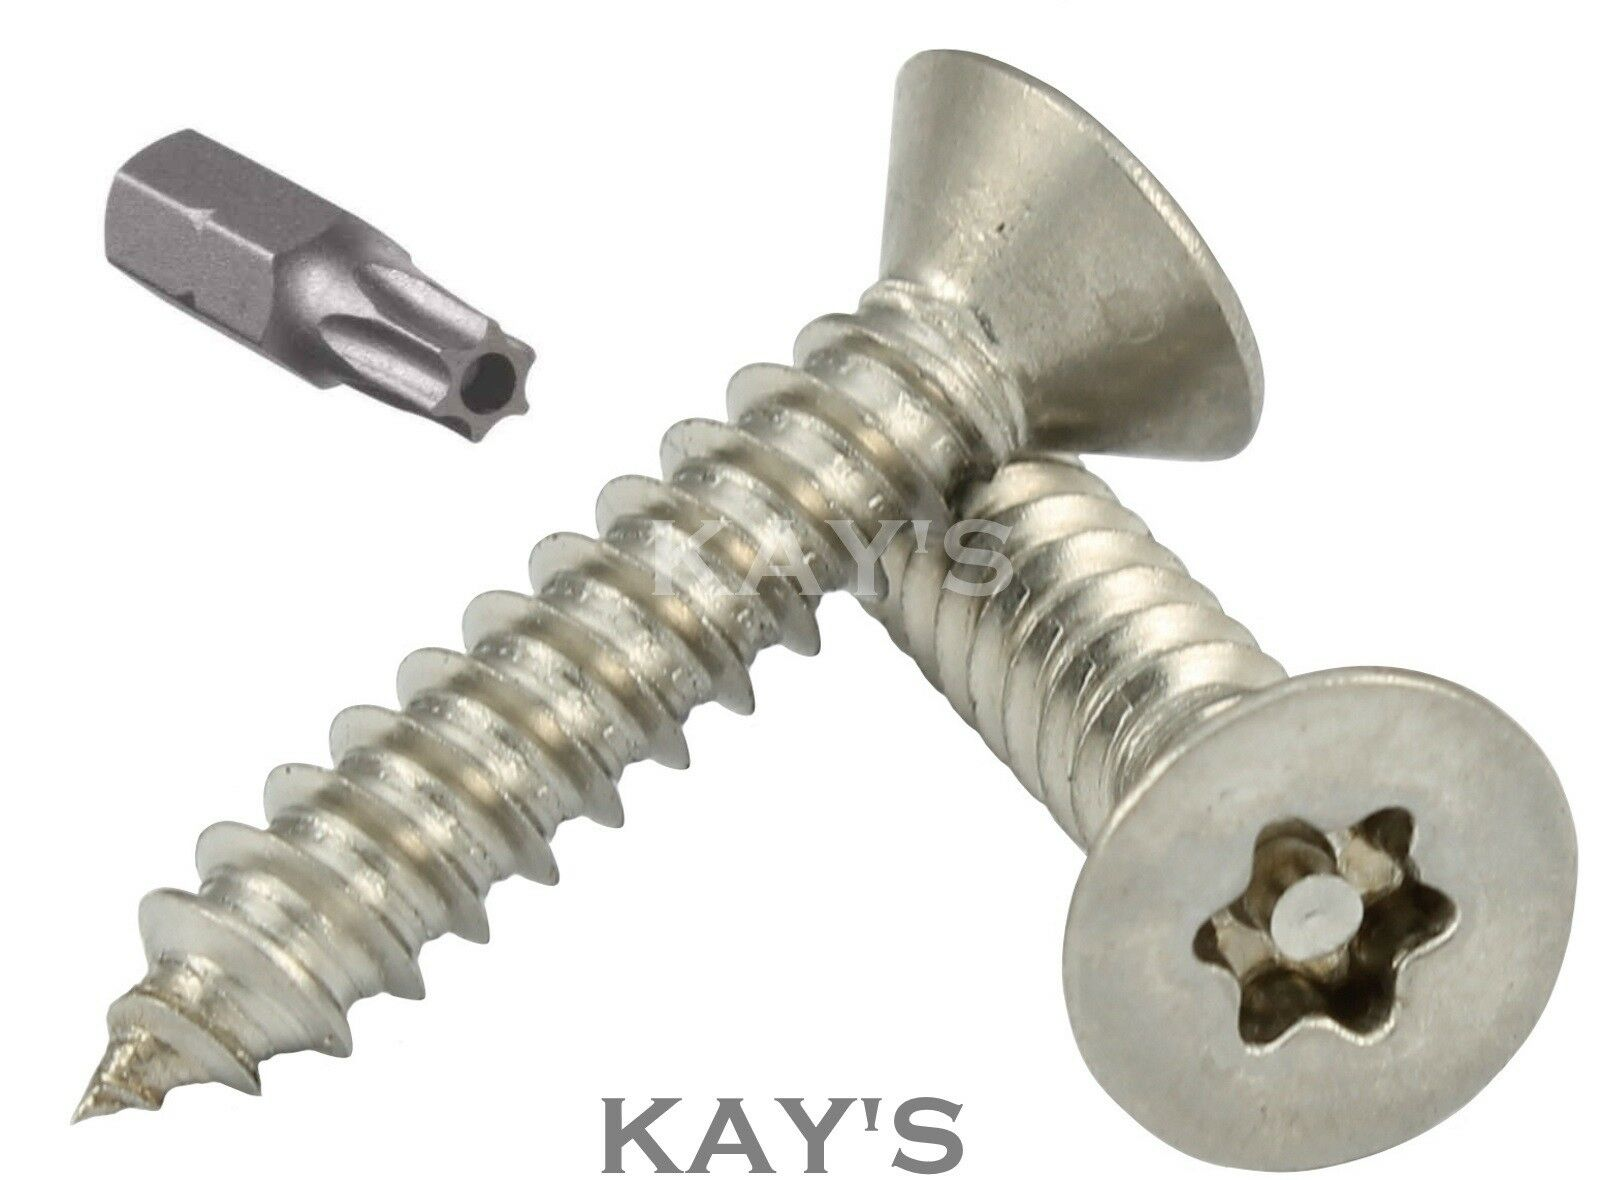 COUNTERSUNK SECURITY SCREWS TORX SELF TAPPING WOOD STAINLESS STEEL No.6,8,10,12